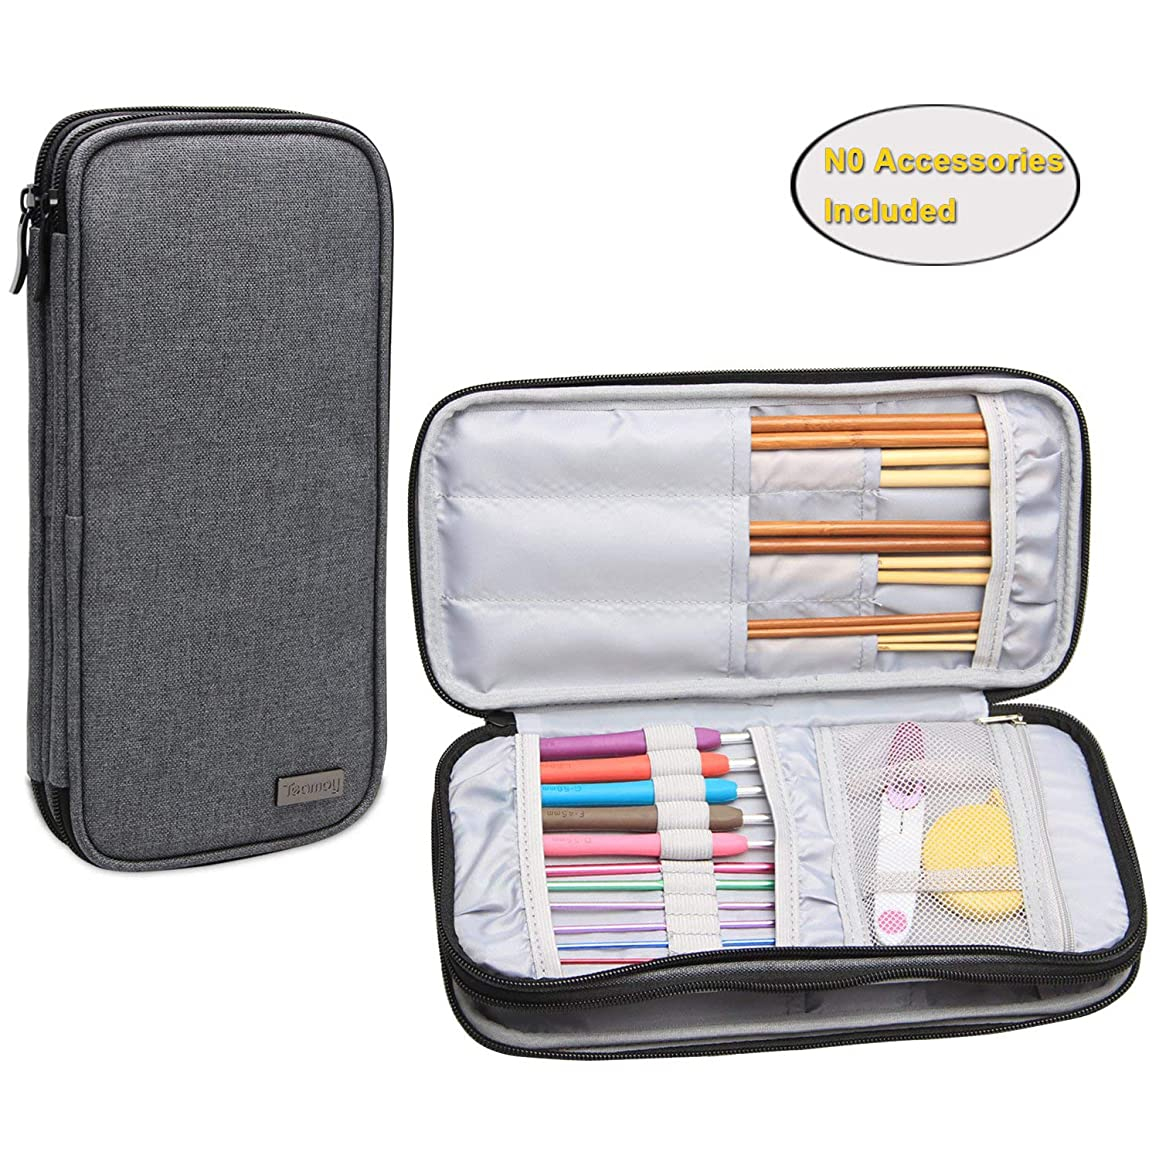 Teamoy Knitting Needles Case(up to 10-Inch), Travel Organizer Storage Bag for Circular and Straight Knitting Needles, Crochet Hooks and Knitting Accessories, Gray-NO Accessories Included